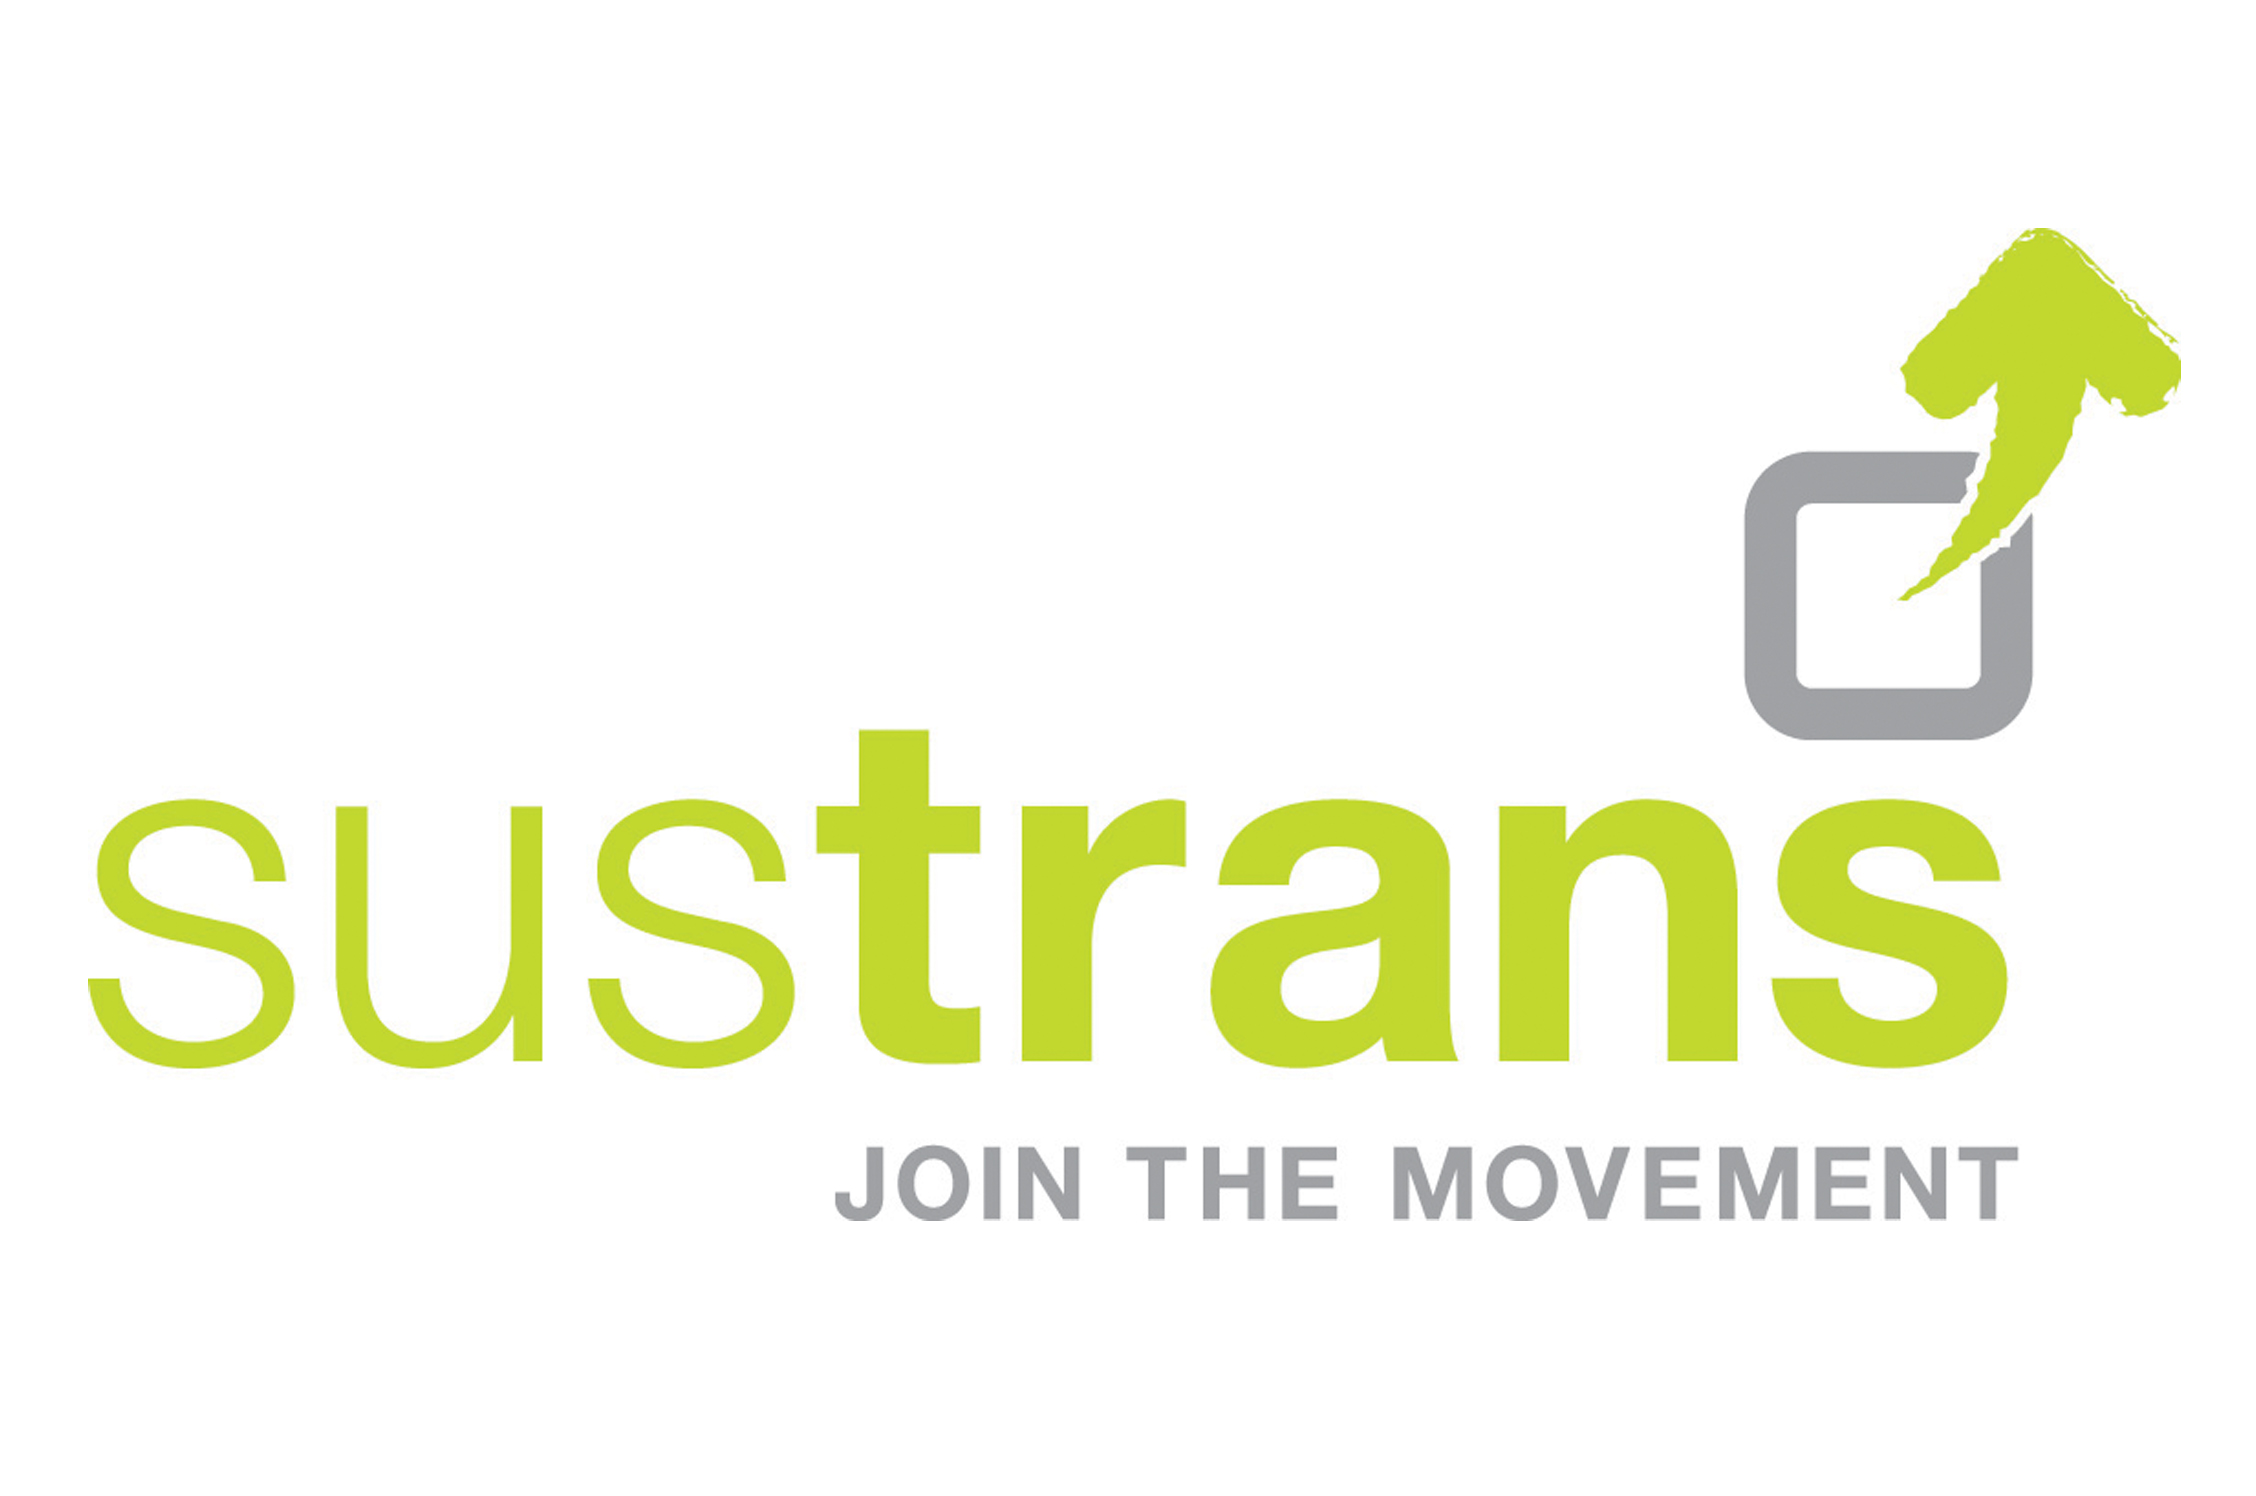 http://penguin-transcription.co.uk/wp-content/uploads/2017/03/Sustrans-Logo-1.jpg